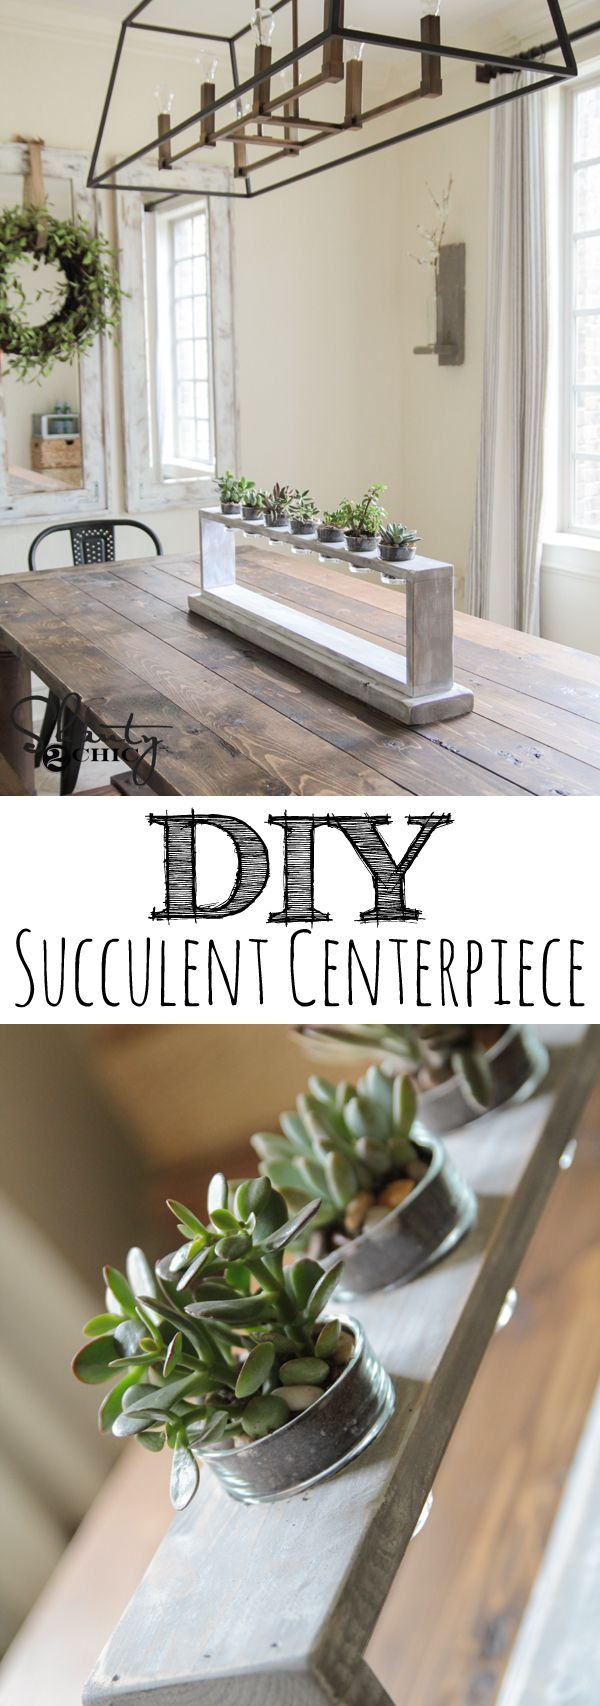 DIY Succulent Centerpiece Tutorial... So cute and easy! www.shanty-2-chic.com